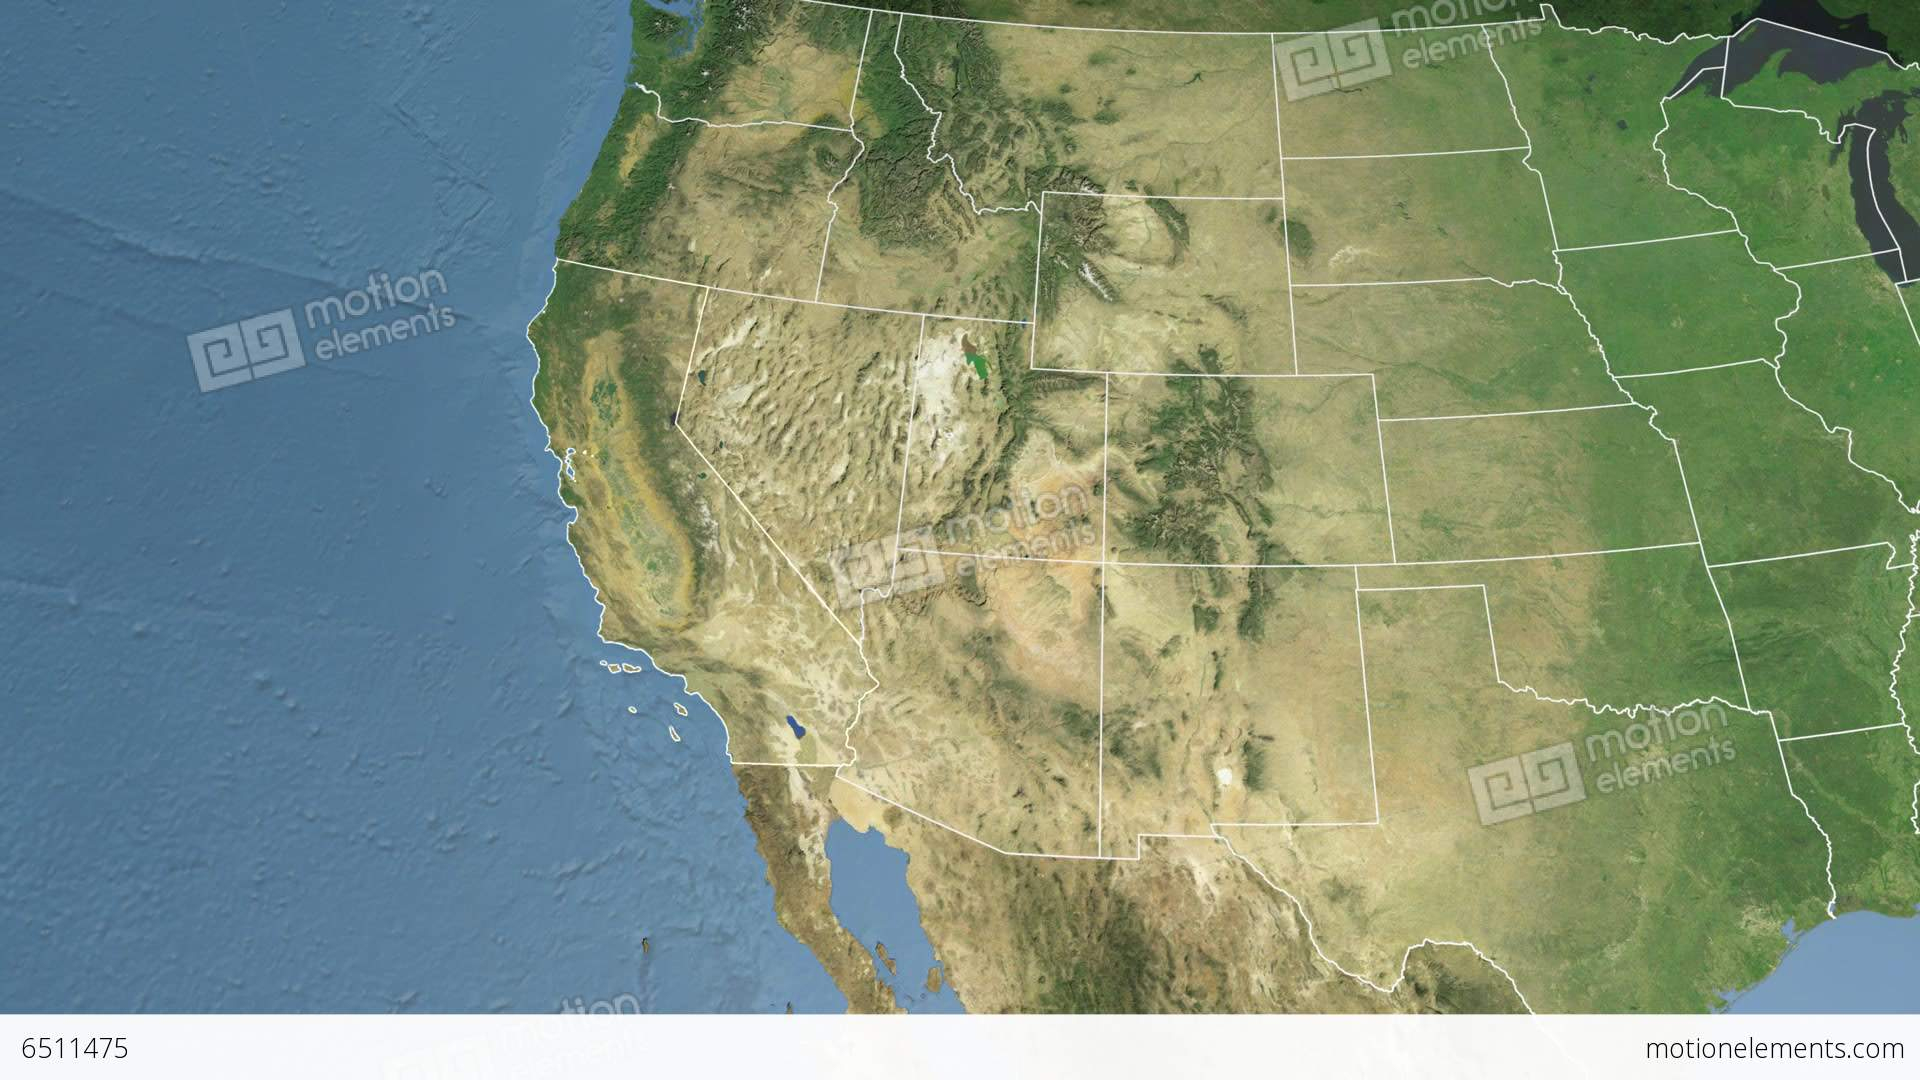 California State (Usa) Extruded. Satellite Map Stock ... on virtual live satellite maps usa, satellite map of the caribbean, severe weather map usa, as seen from space usa, topographic of usa, united states maps usa, satellite map of savannah ga, fiber map usa, plants in the usa, satellite map of earth, satellite map of florida, home of usa, satellite imagery by address, travel weather map usa, digital maps of usa, satellite map of north america, satellite map north carolina, world map of usa, satellite map of colorado, topography map of usa,